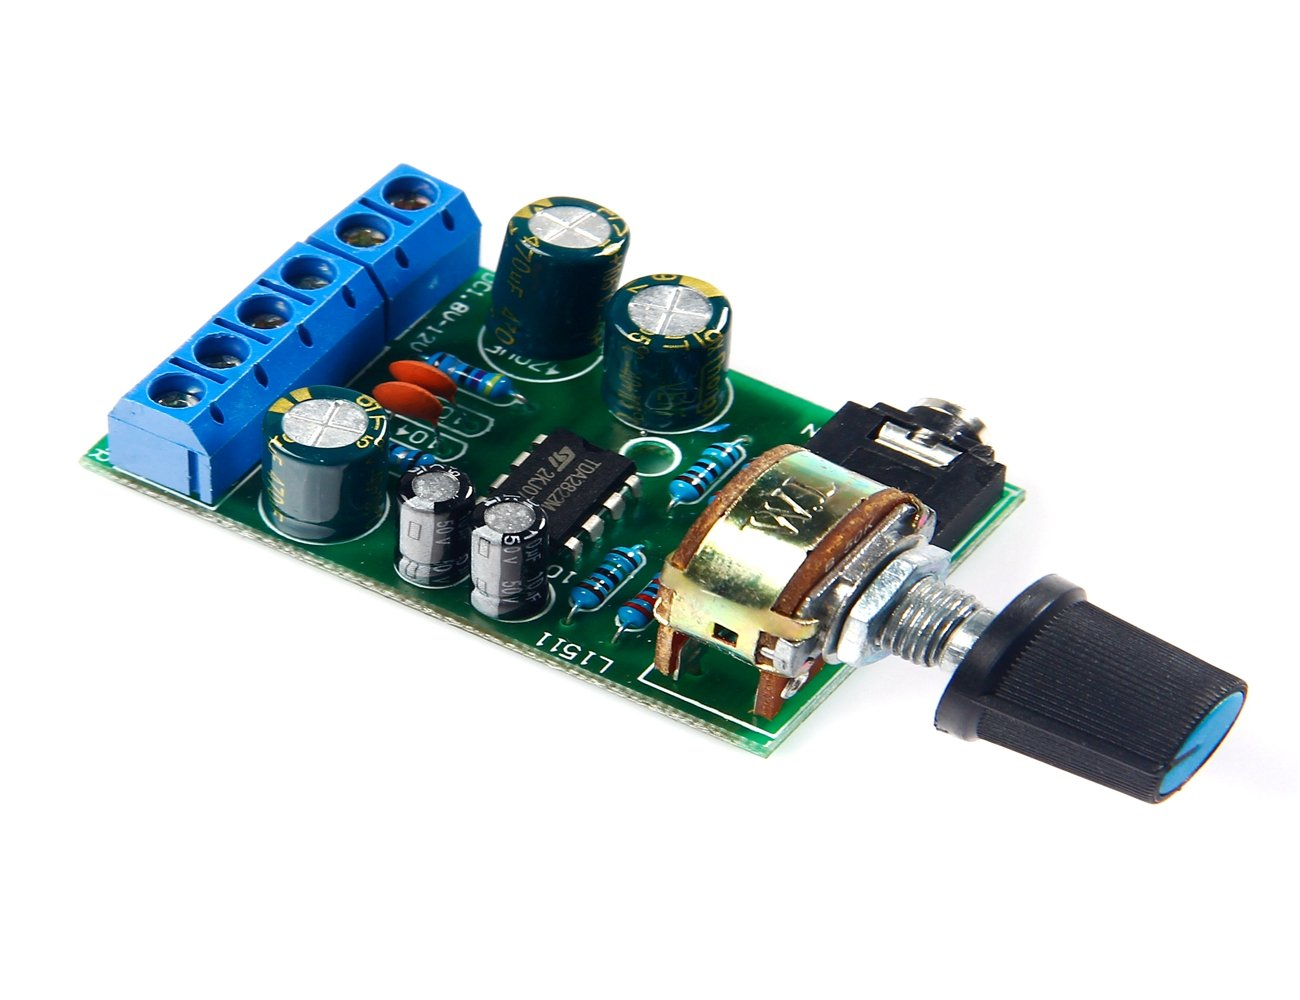 Dc18 12v Tda2822m Amplifier 20 Channel Stereo Aux 1w Headphone Based Tda2822 Audio Amp Board Module Home Theater